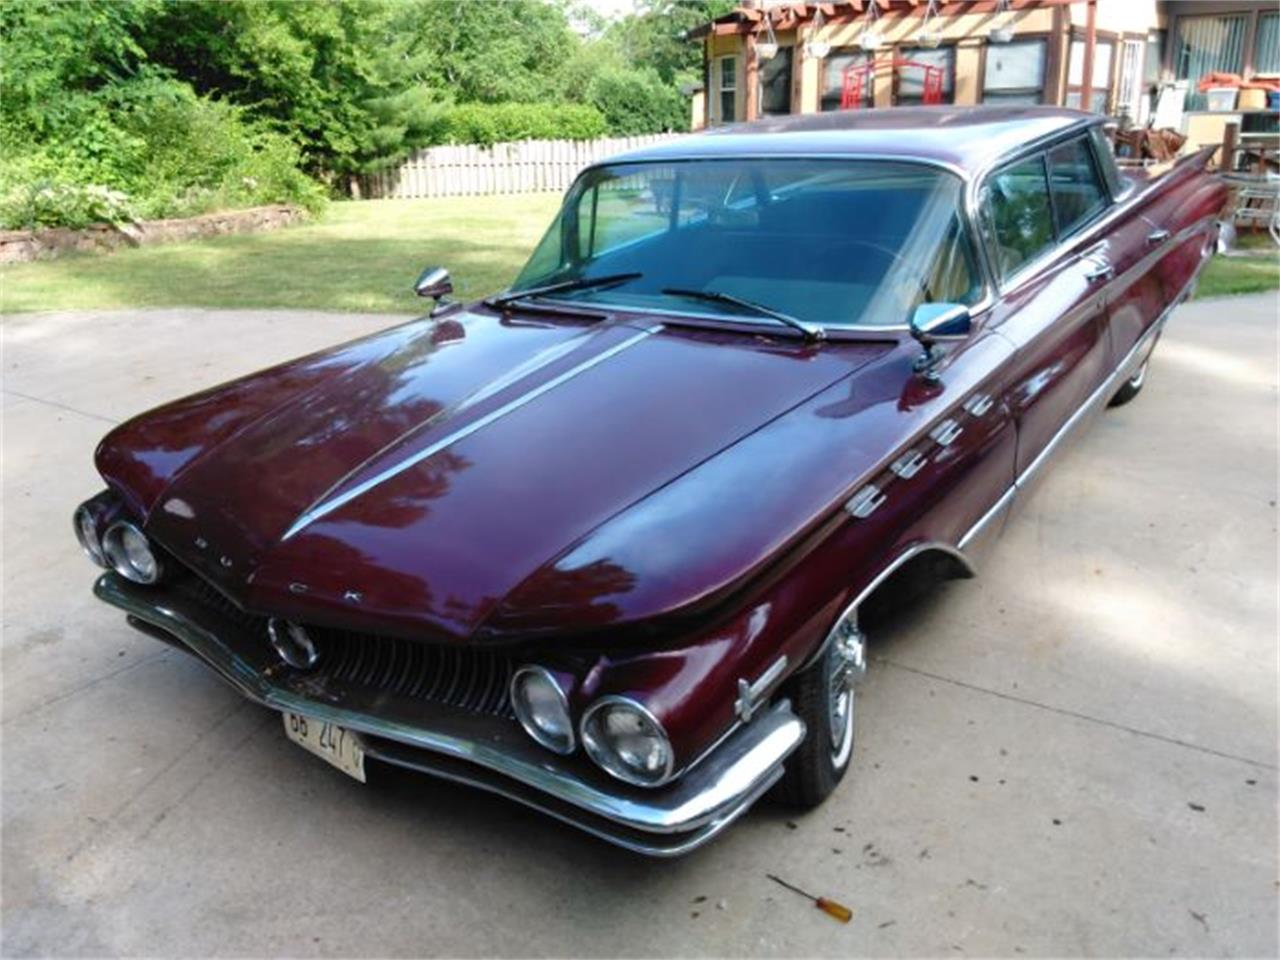 1960 Buick Electra 225 for sale in Cadillac, MI